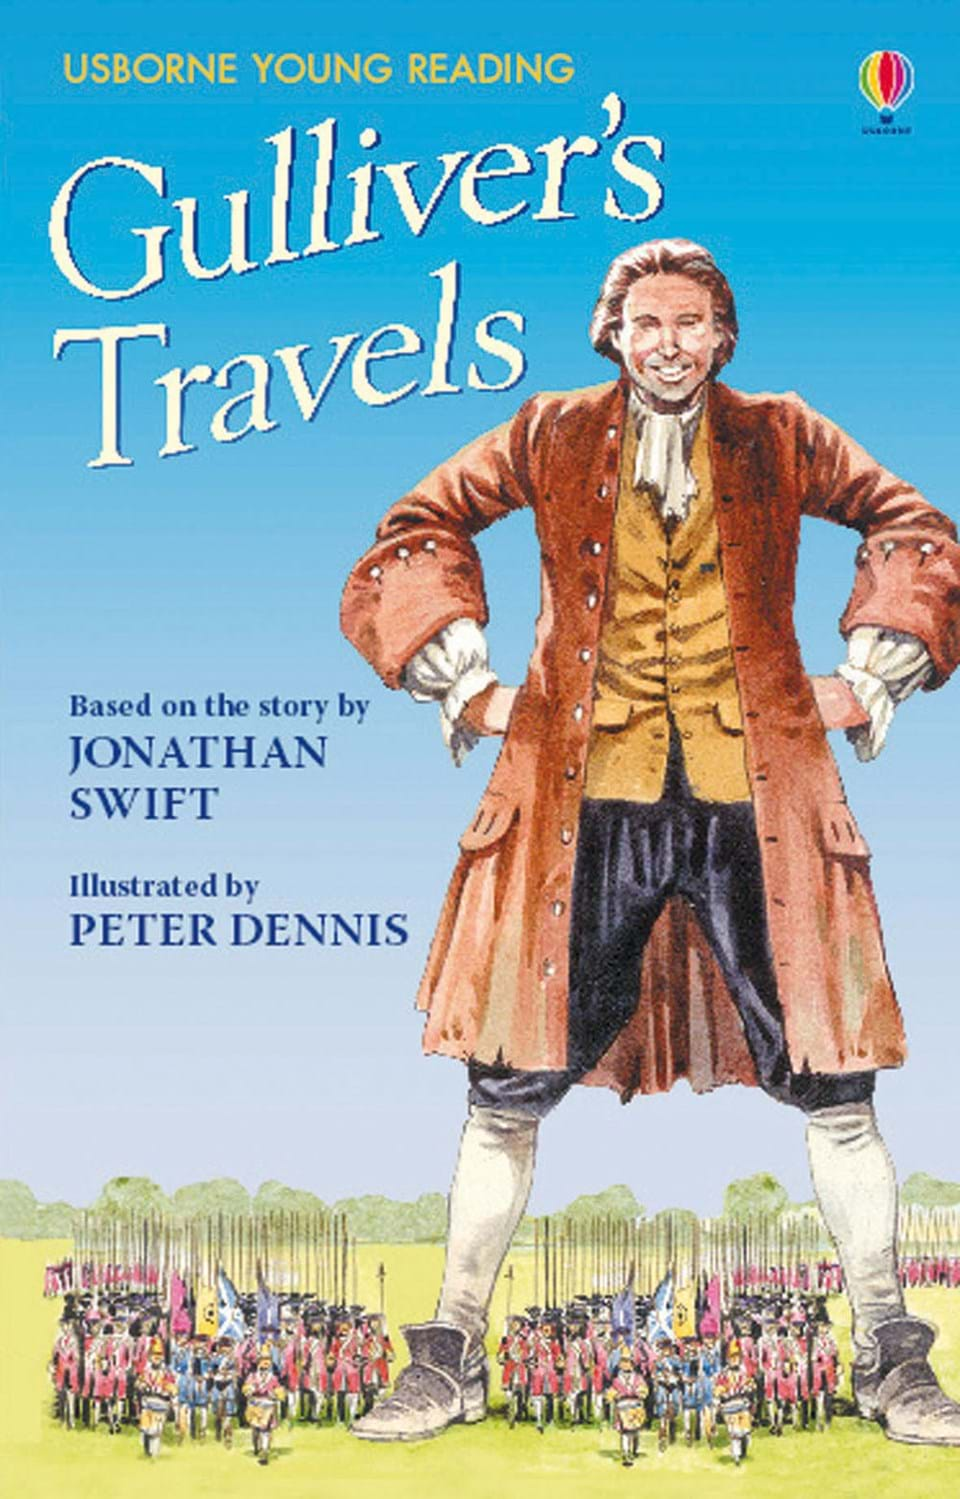 a plot analysis of the book gullivers travel Gulliver's travels we hope this review was both interesting and useful summary advisory plot summary by the end of the book, gulliver is convinced that he and all humans are descended from yahoos.